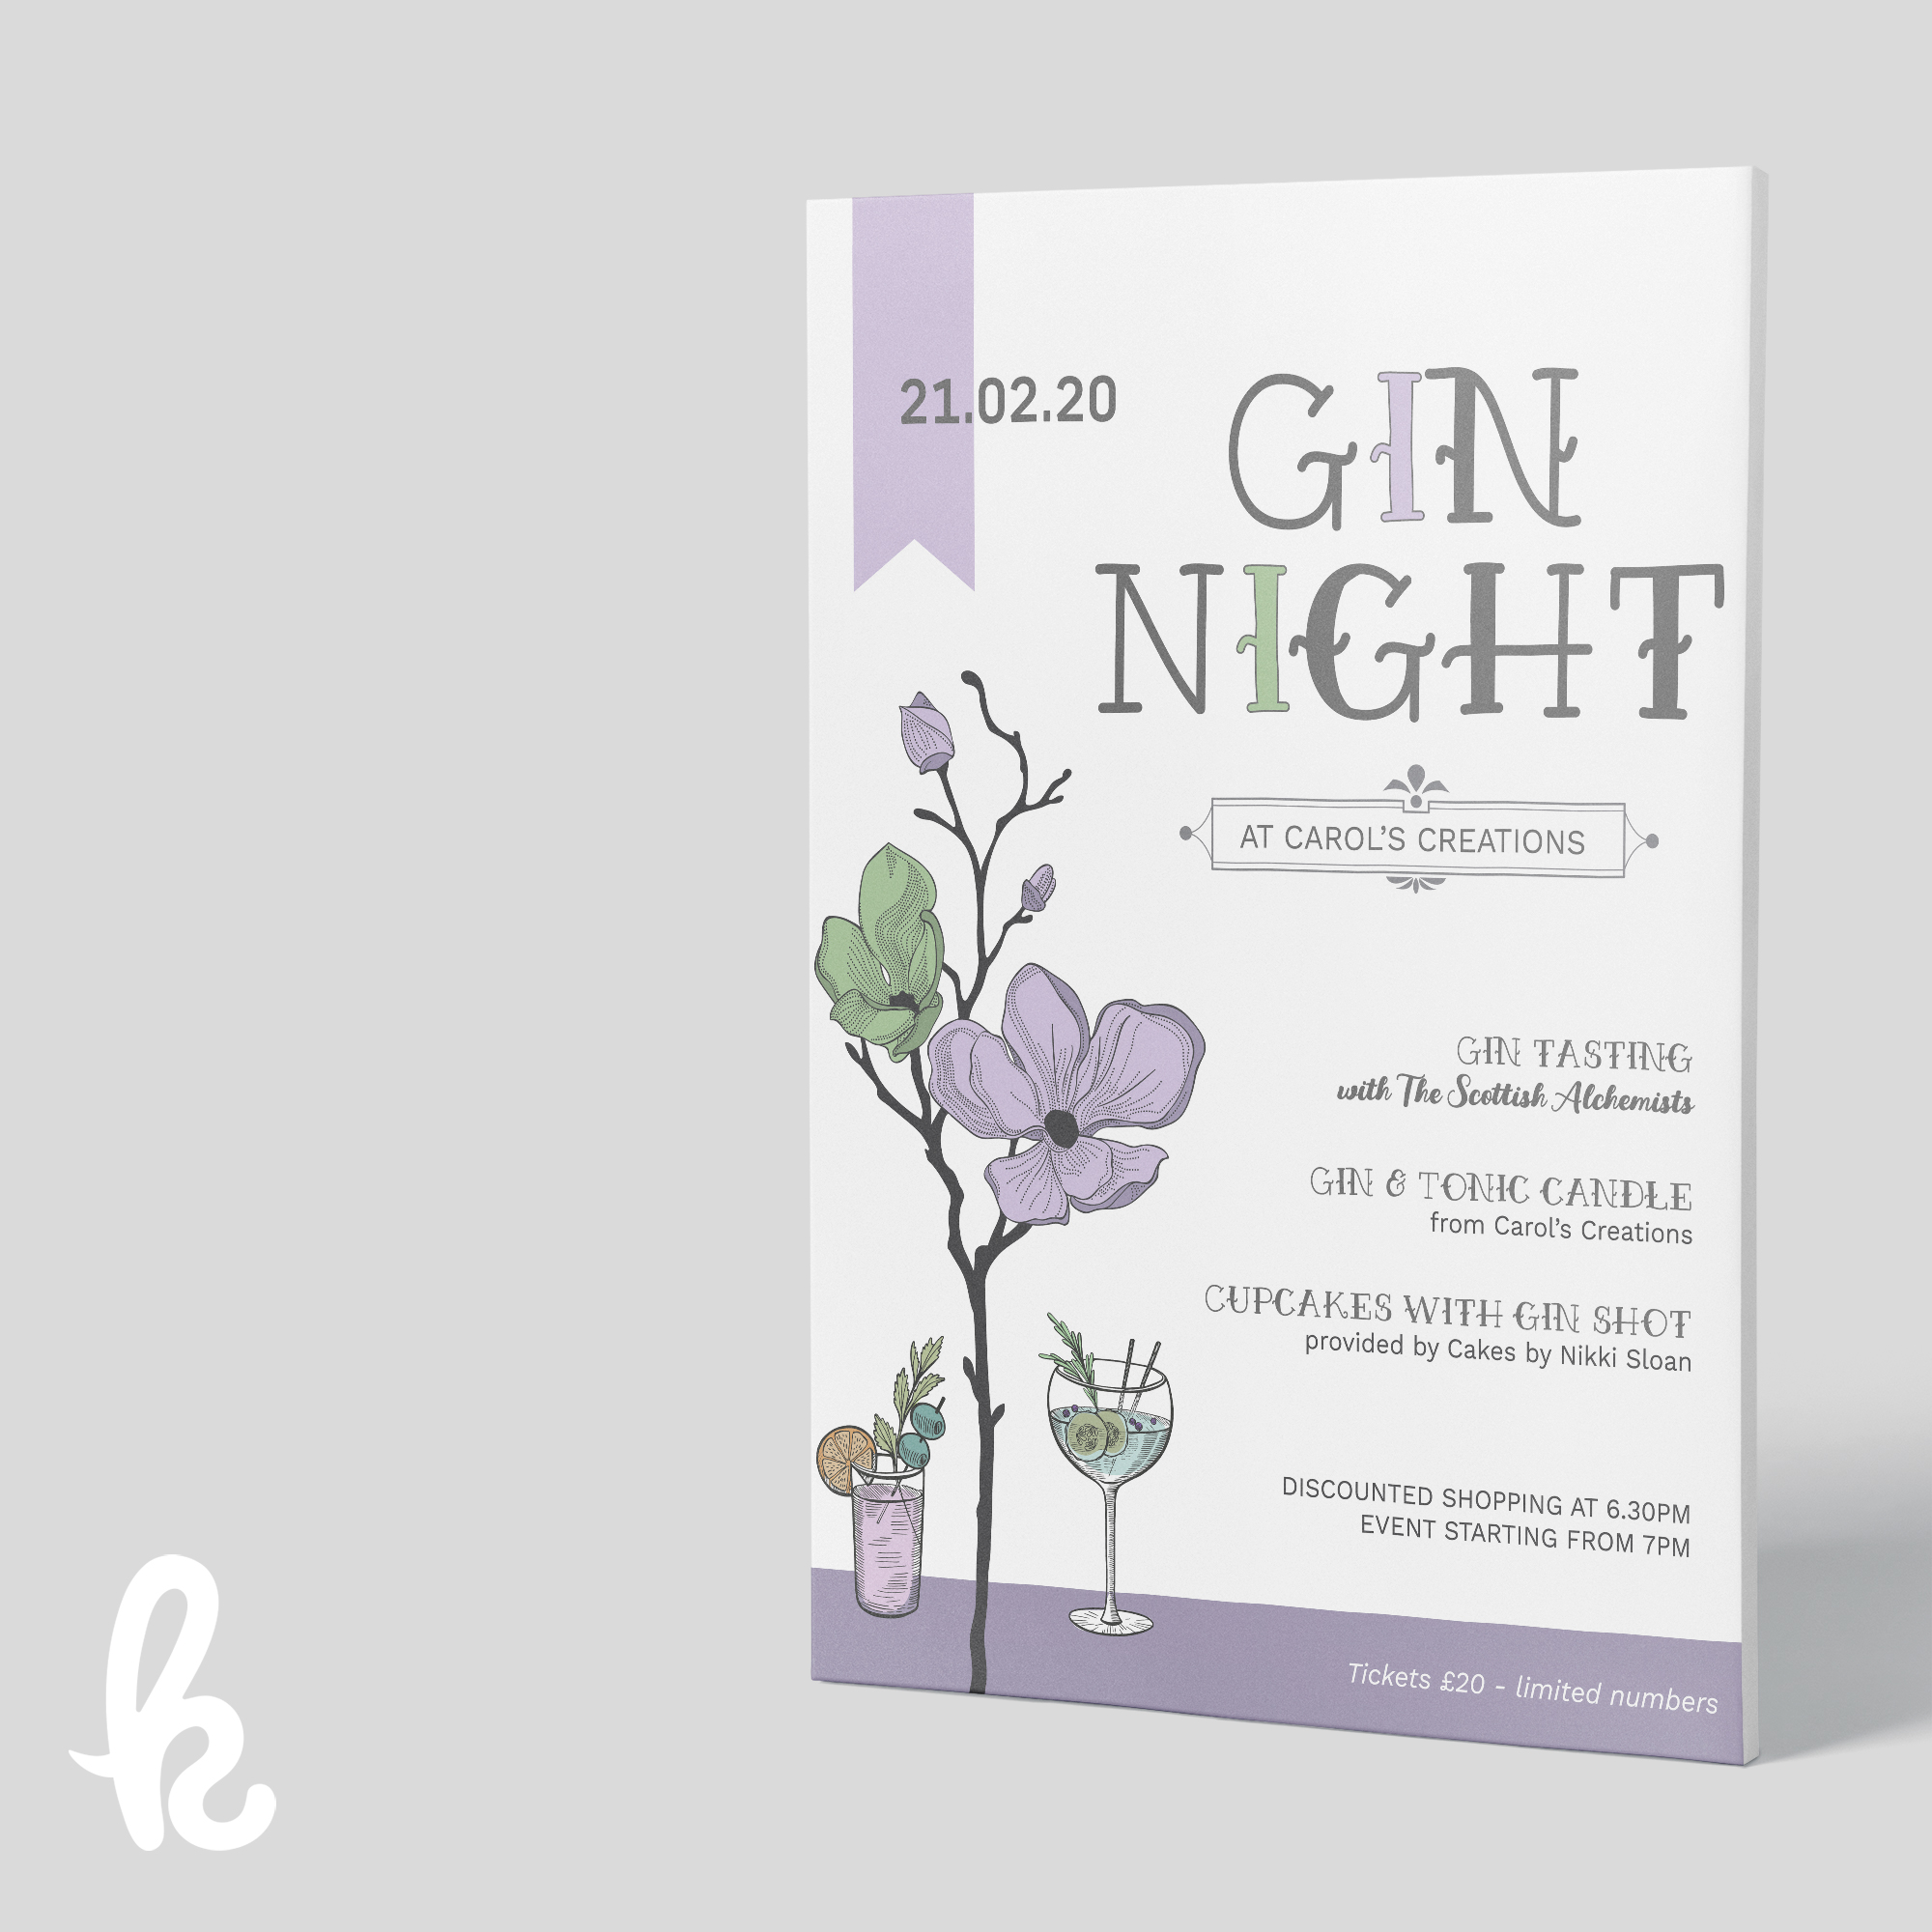 Gin tasting event - Poster